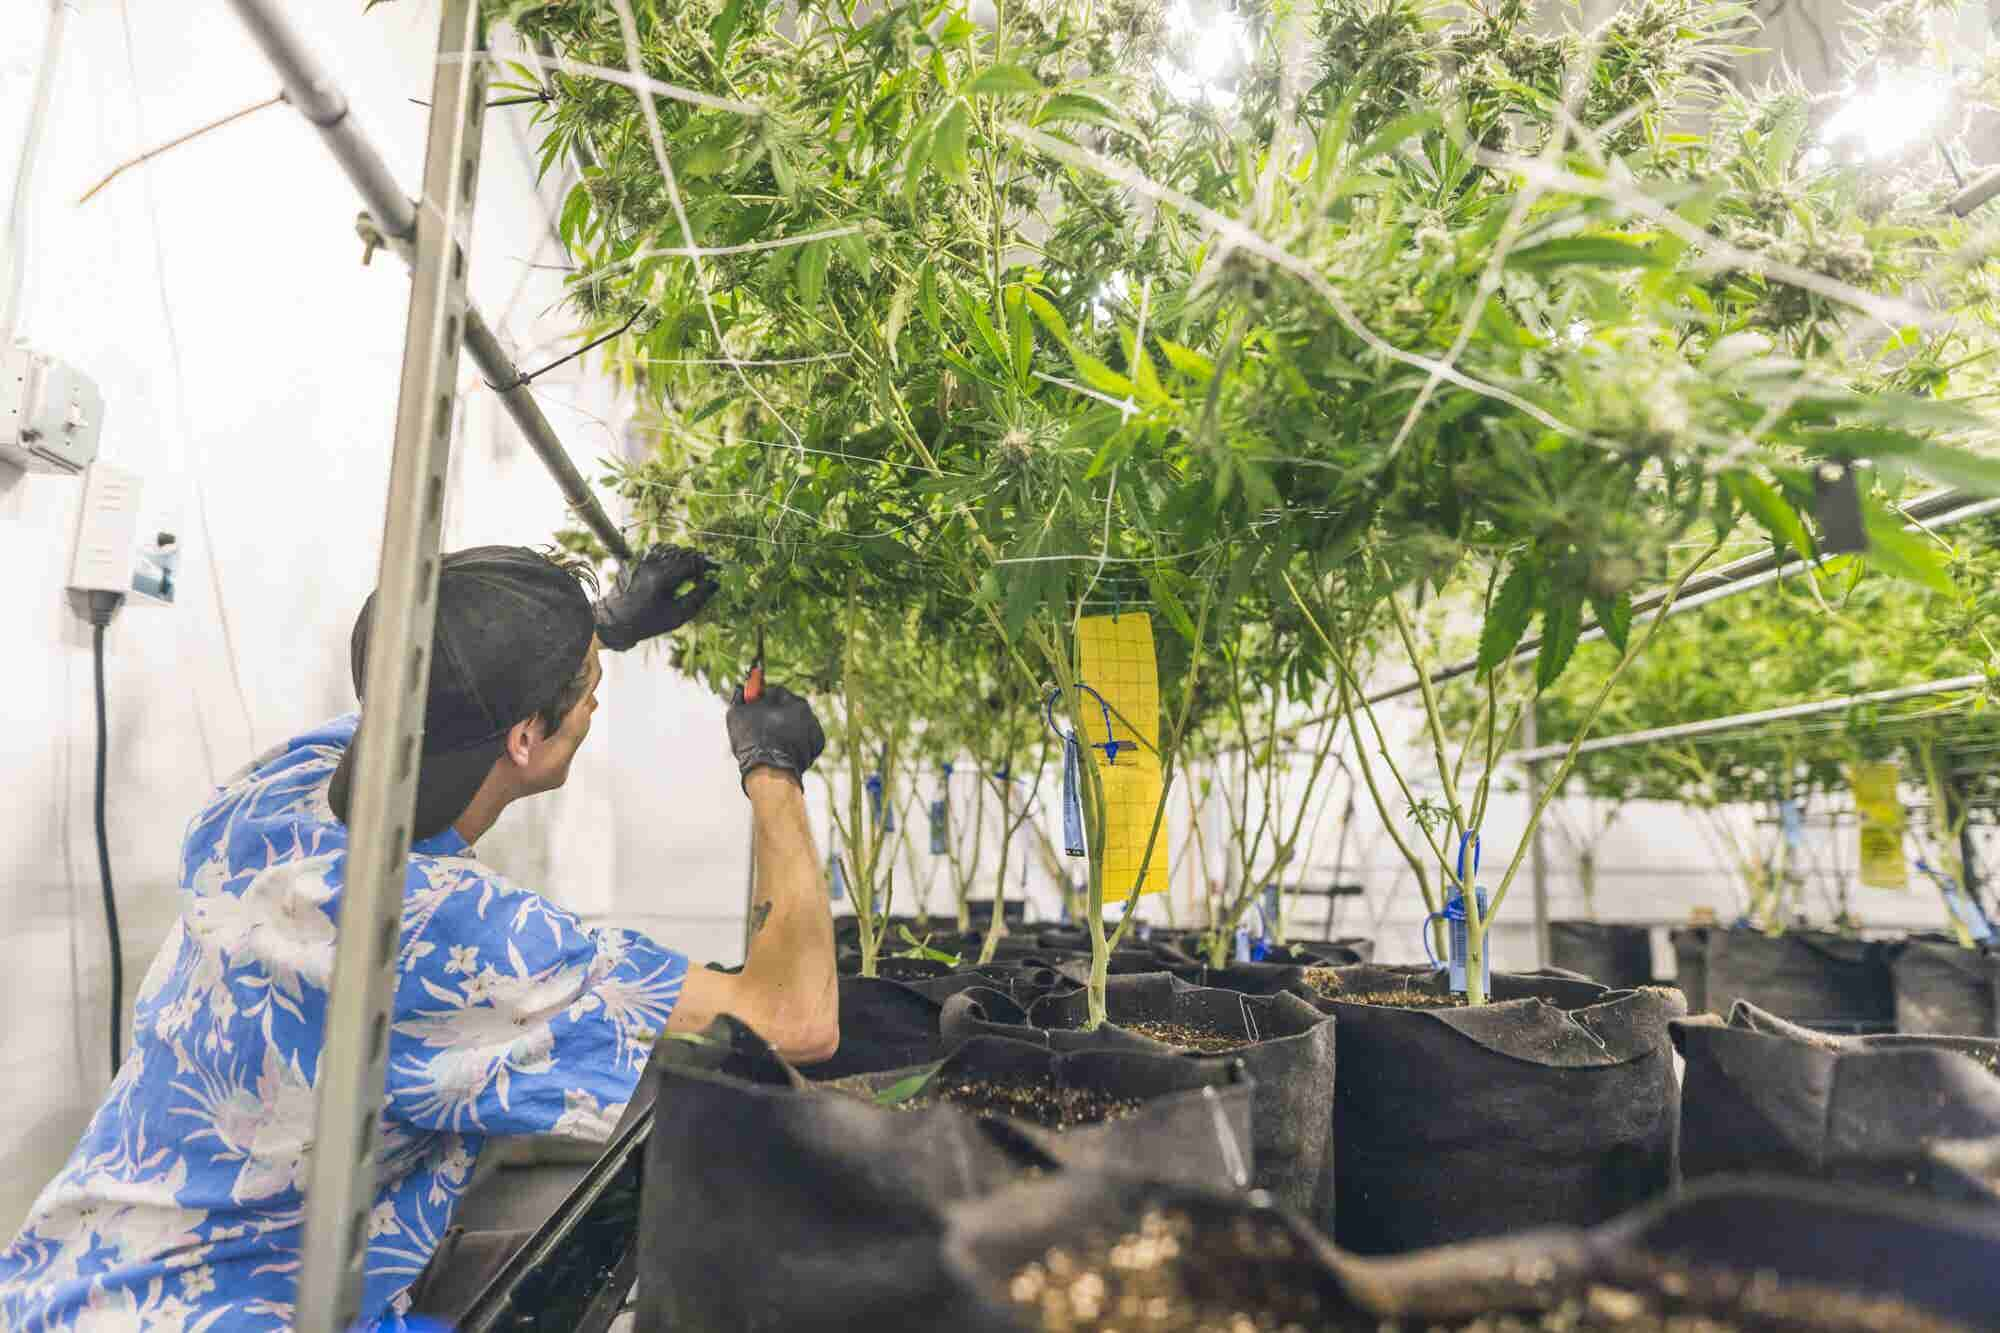 Many Licensed California Marijuana Growers Face Regulatory Roadblocks...